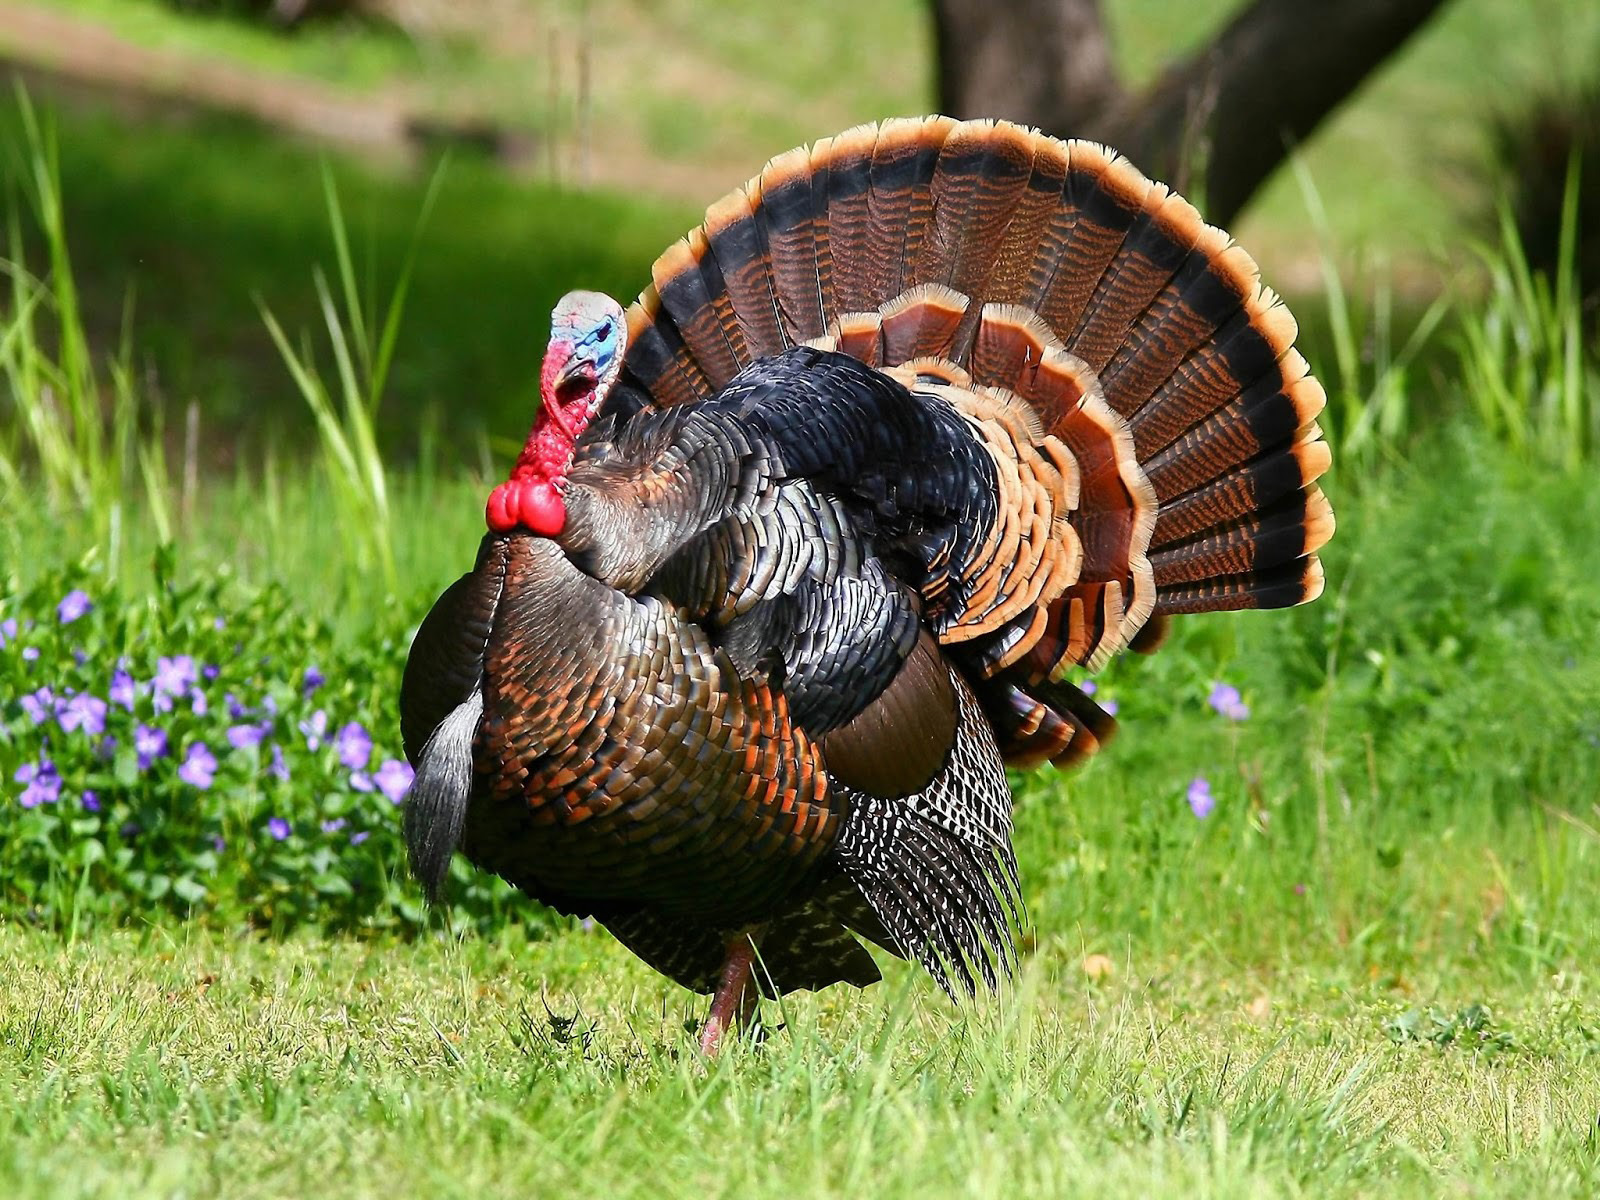 photos of turkey natural turkey birds picture here are six turkey 1600x1200